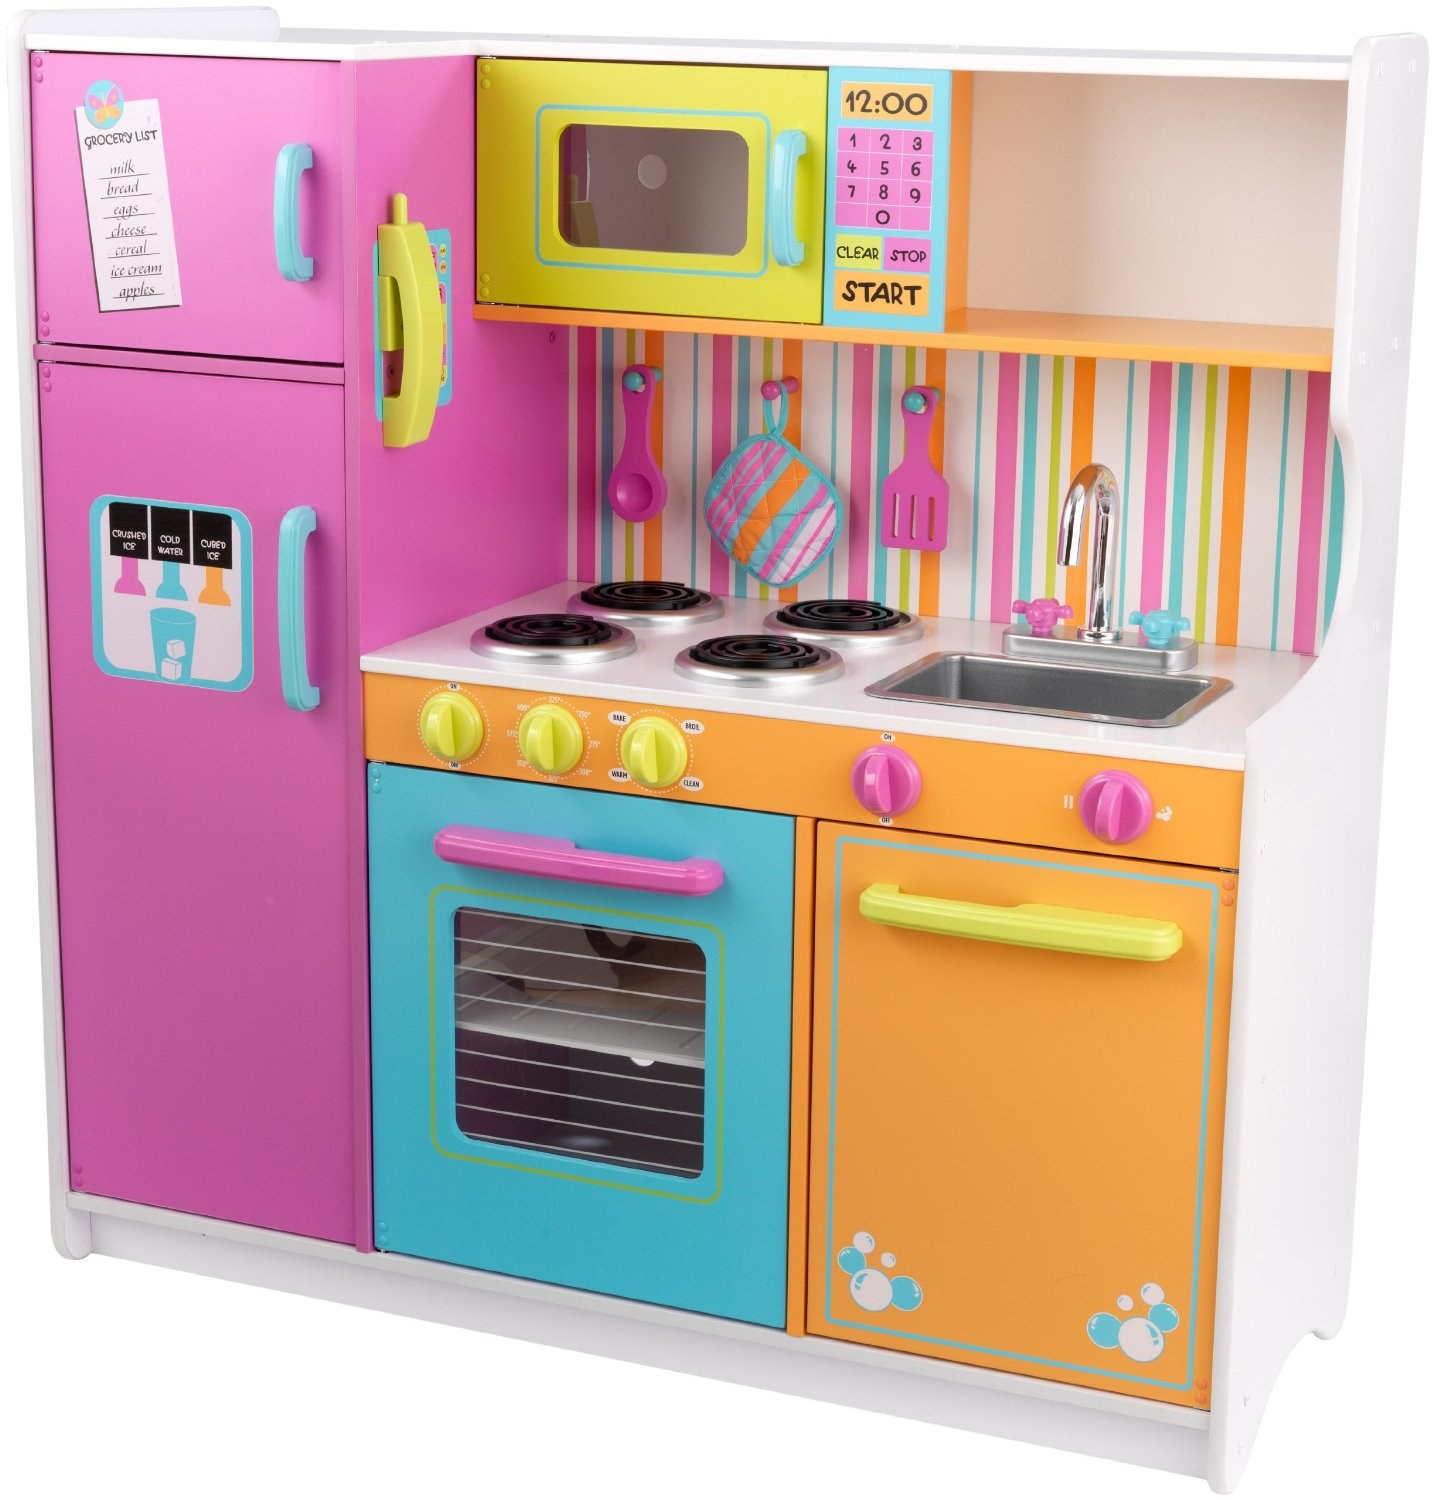 Wooden kitchen set for toddlers Photo - 3